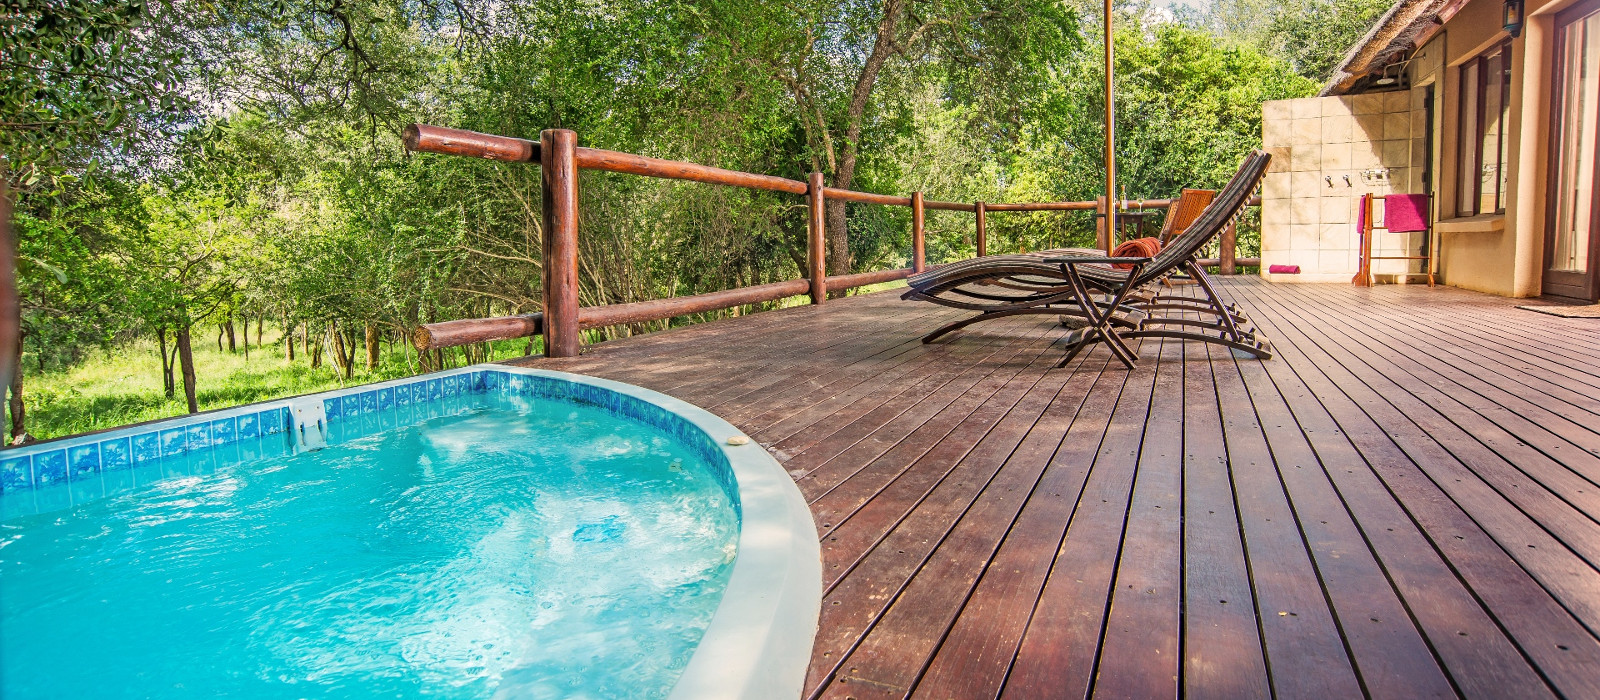 Hotel Shiduli Private Game Lodge Südafrika